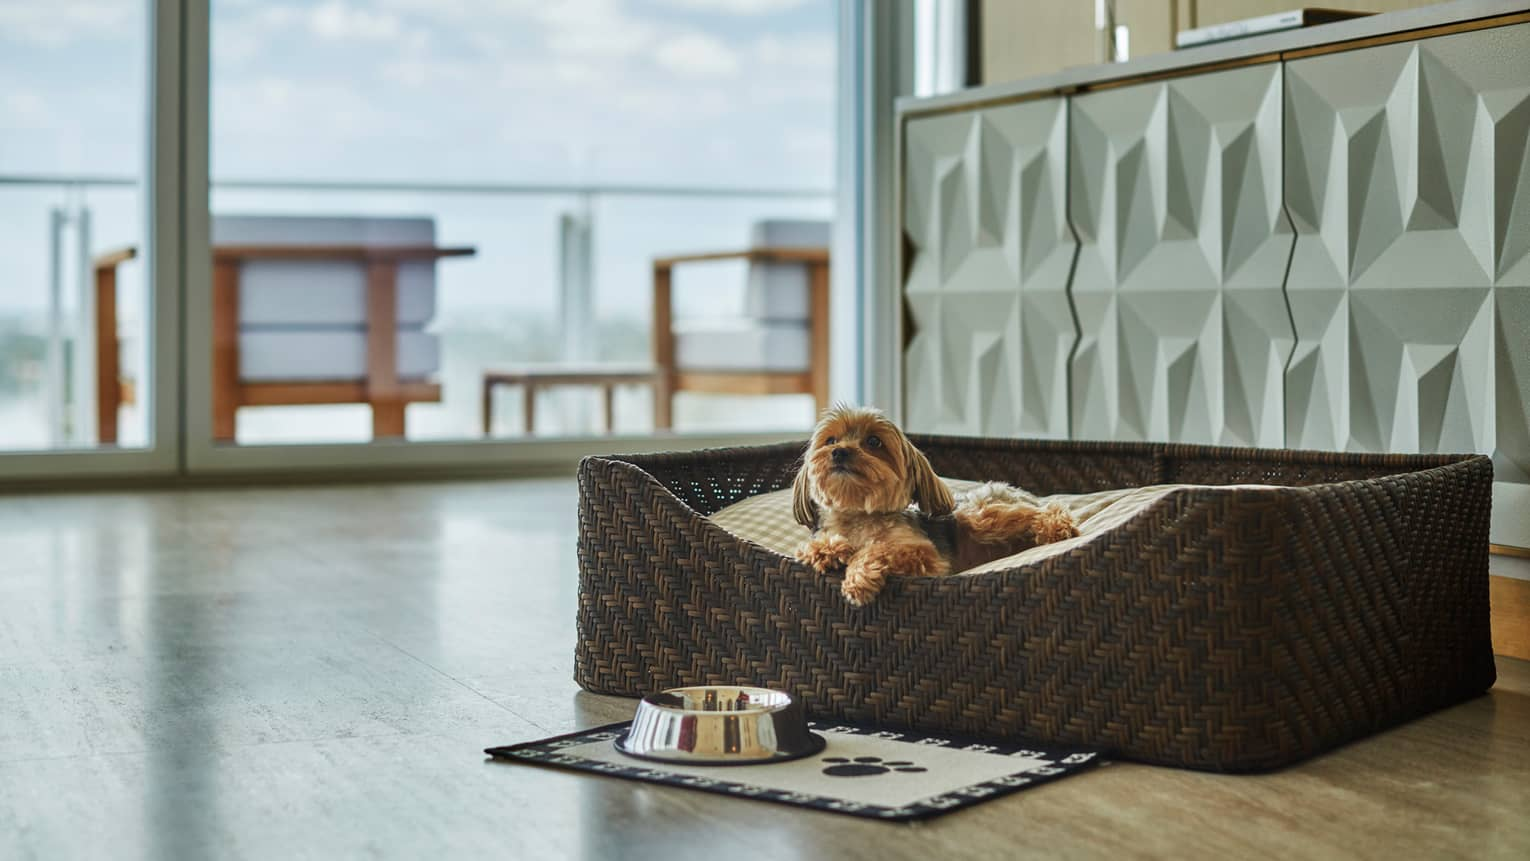 Small dog lounges in basket in front of mat, bowl by glass balcony door